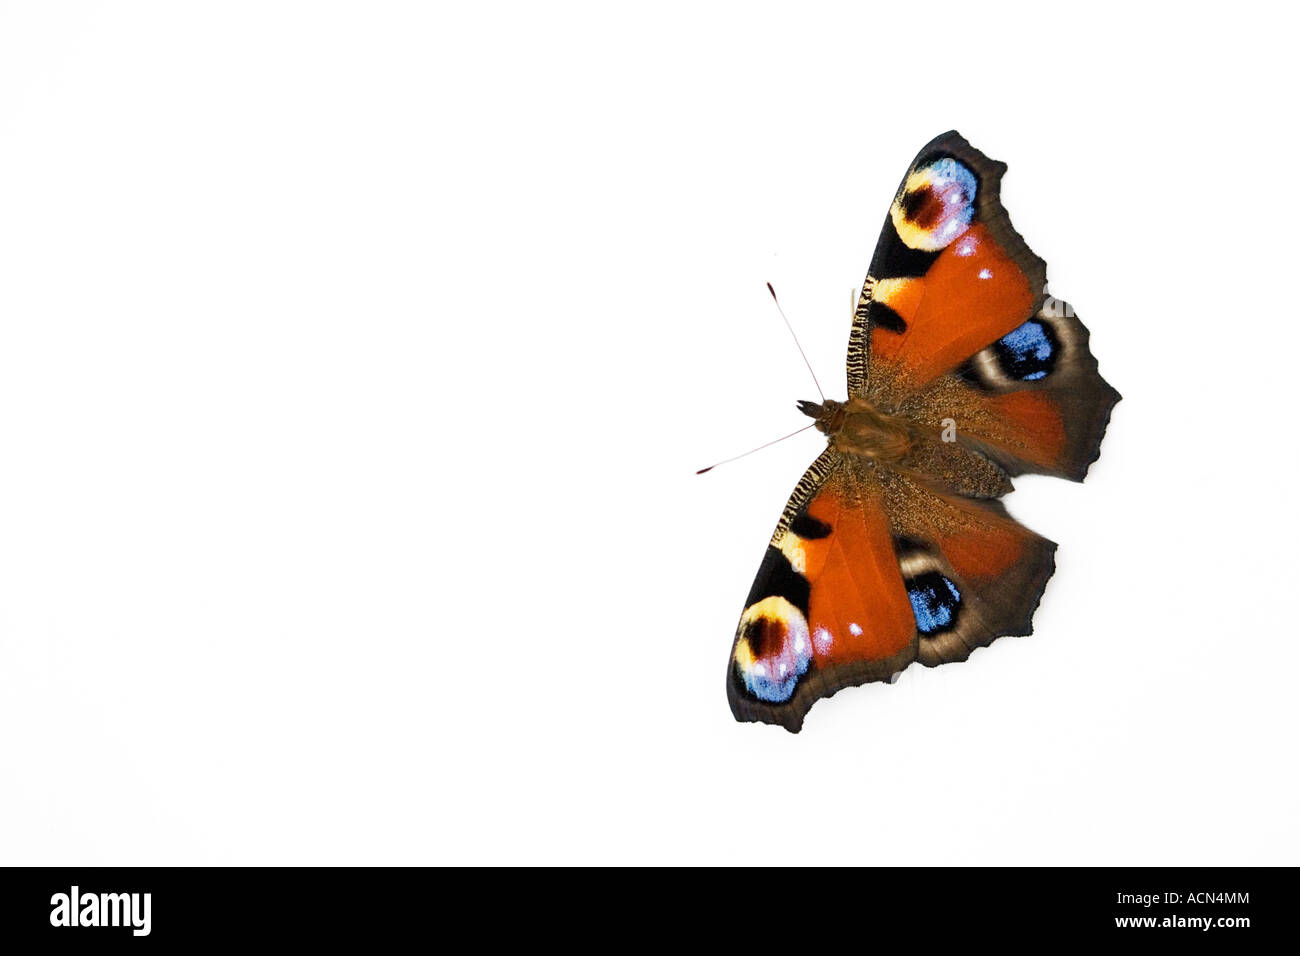 Aglais io. Peacock butterfly on white background - Stock Image